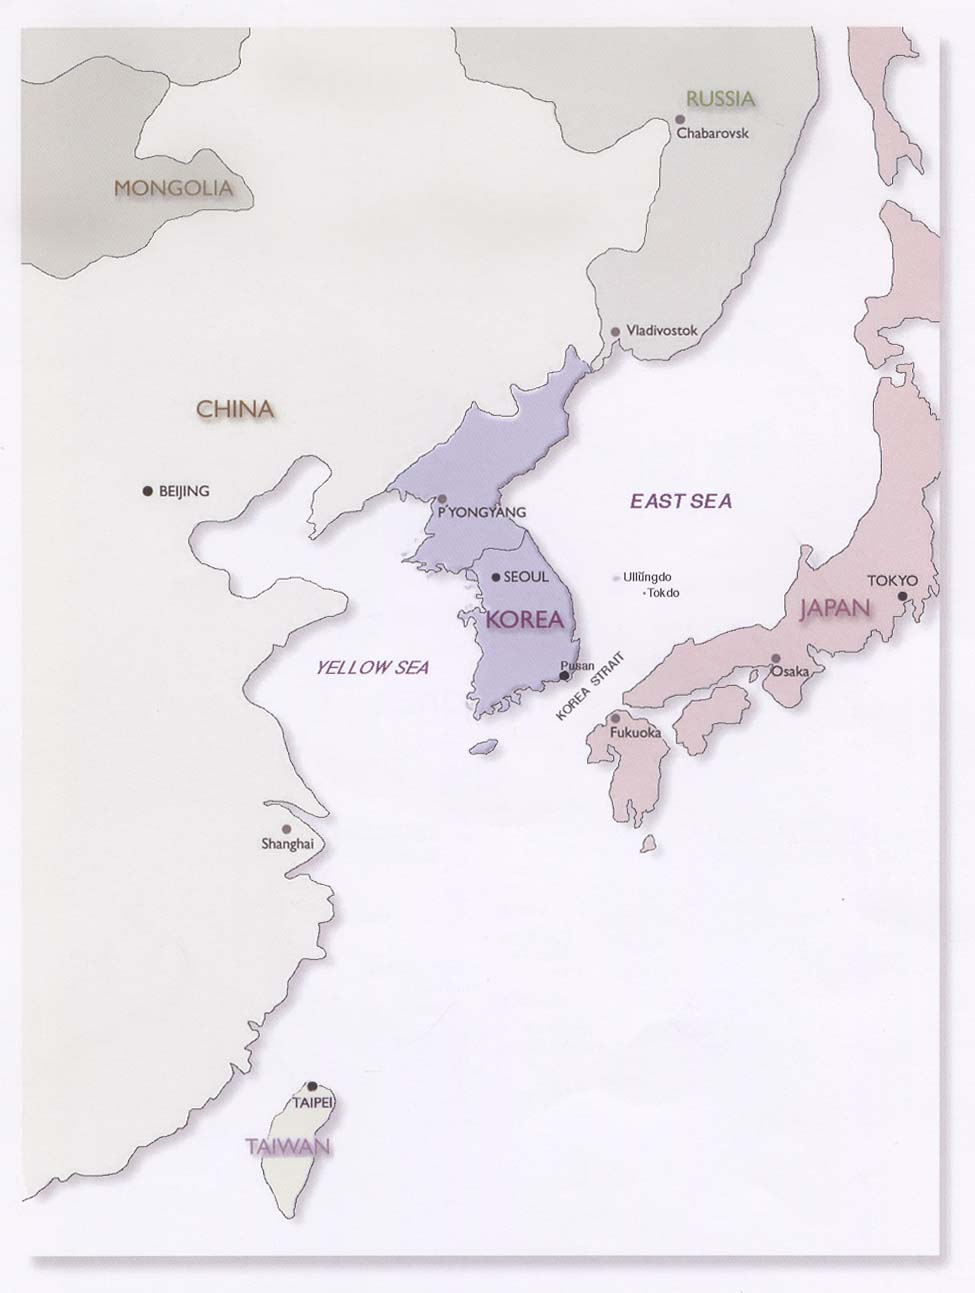 korean peninsula location map